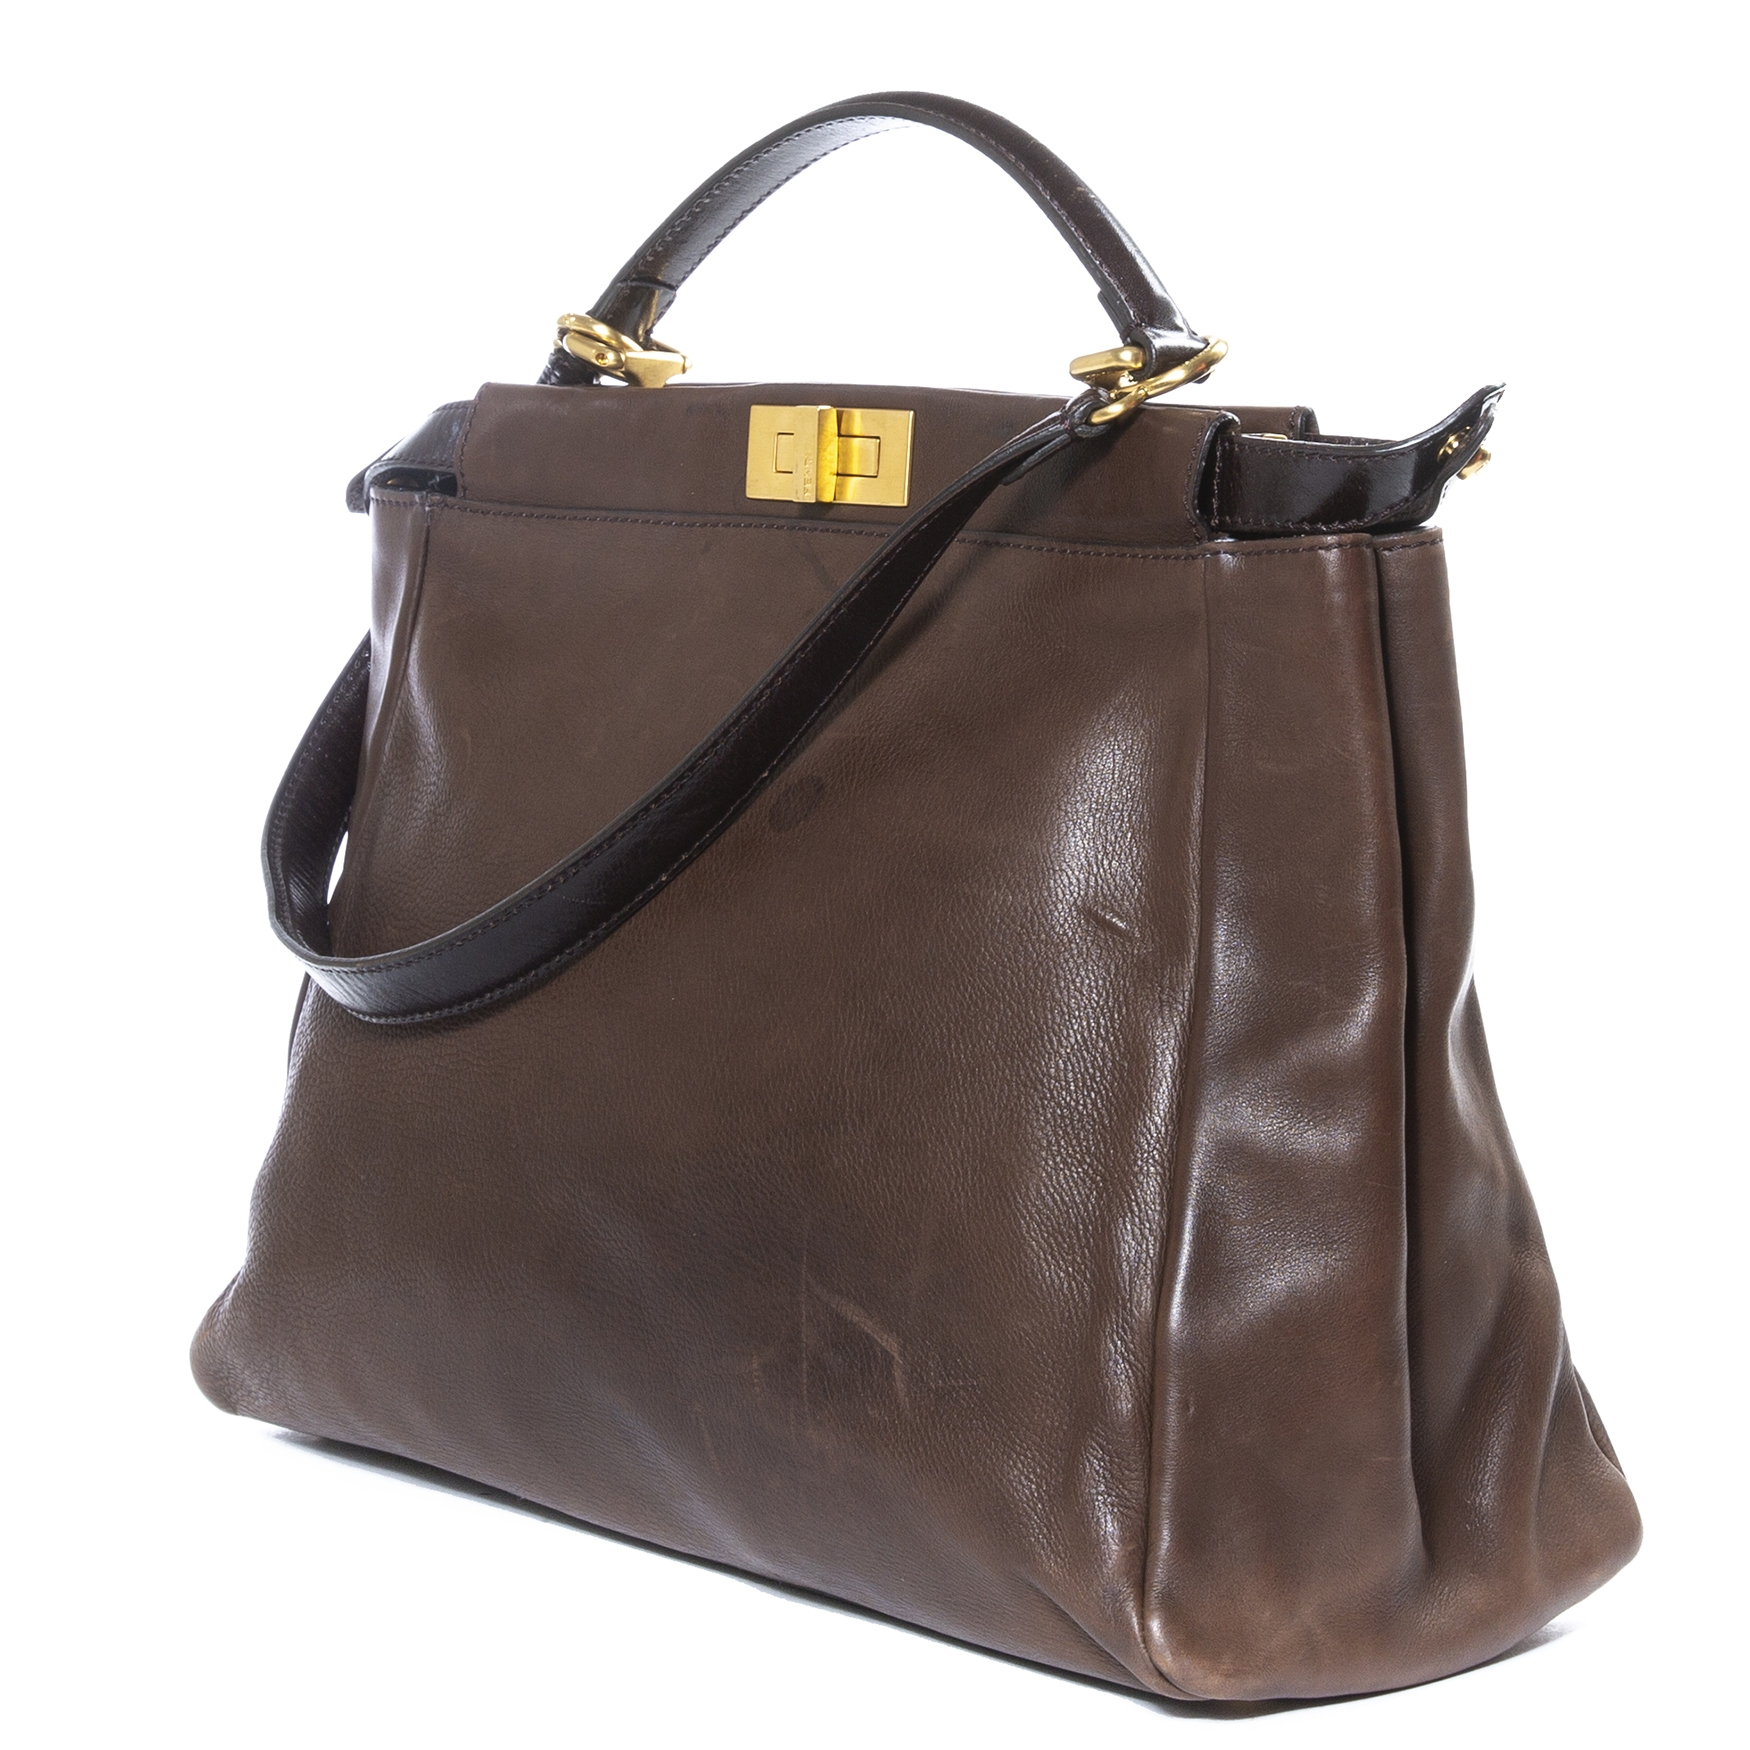 Fendi Peekaboo Brown Large Bag + Strap